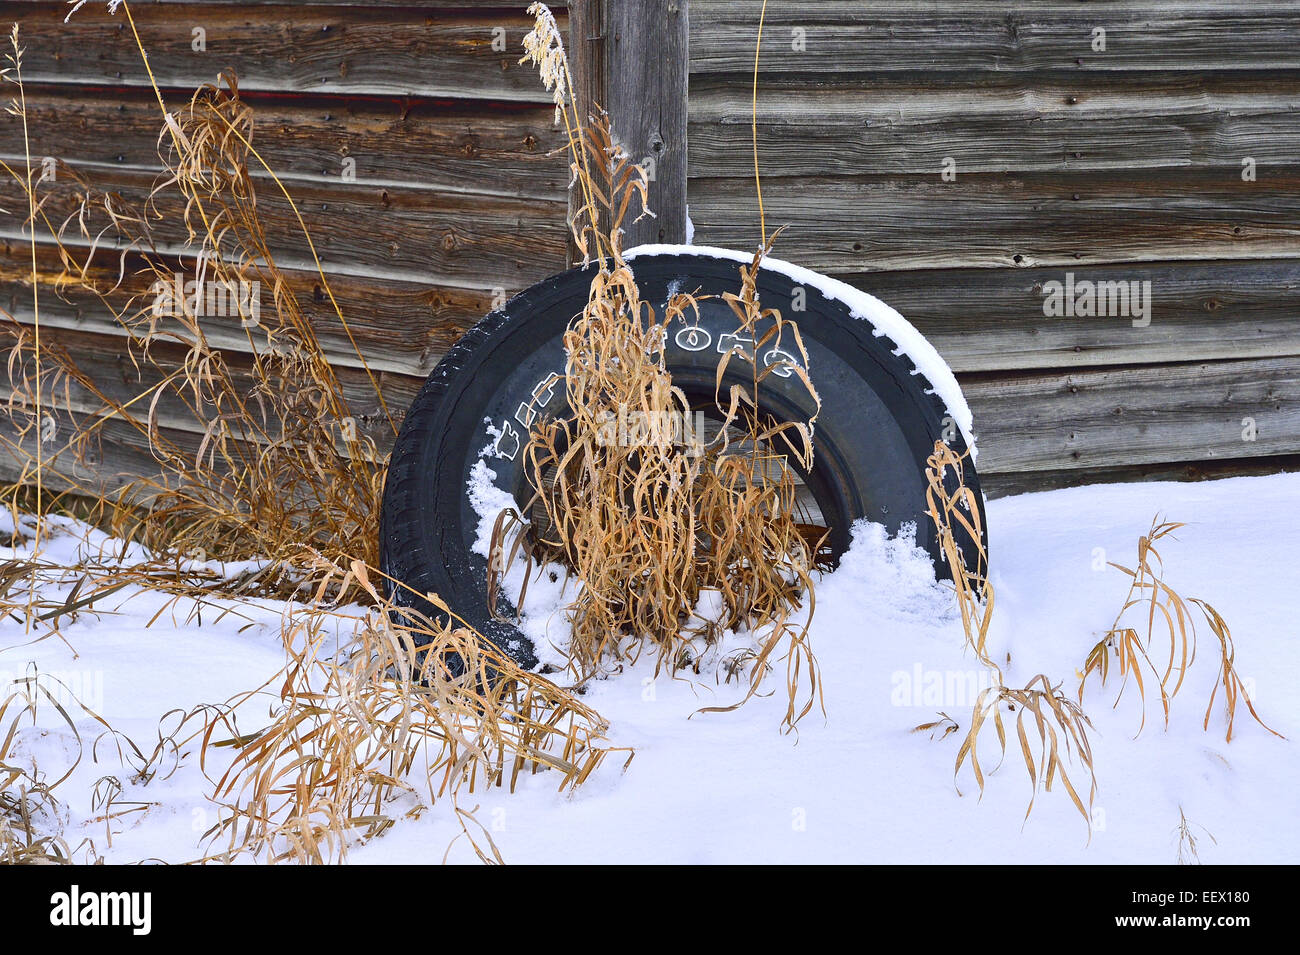 An image of a worn out rubber tire discarded by the corner of a wooden shed with snow and grass - Stock Image